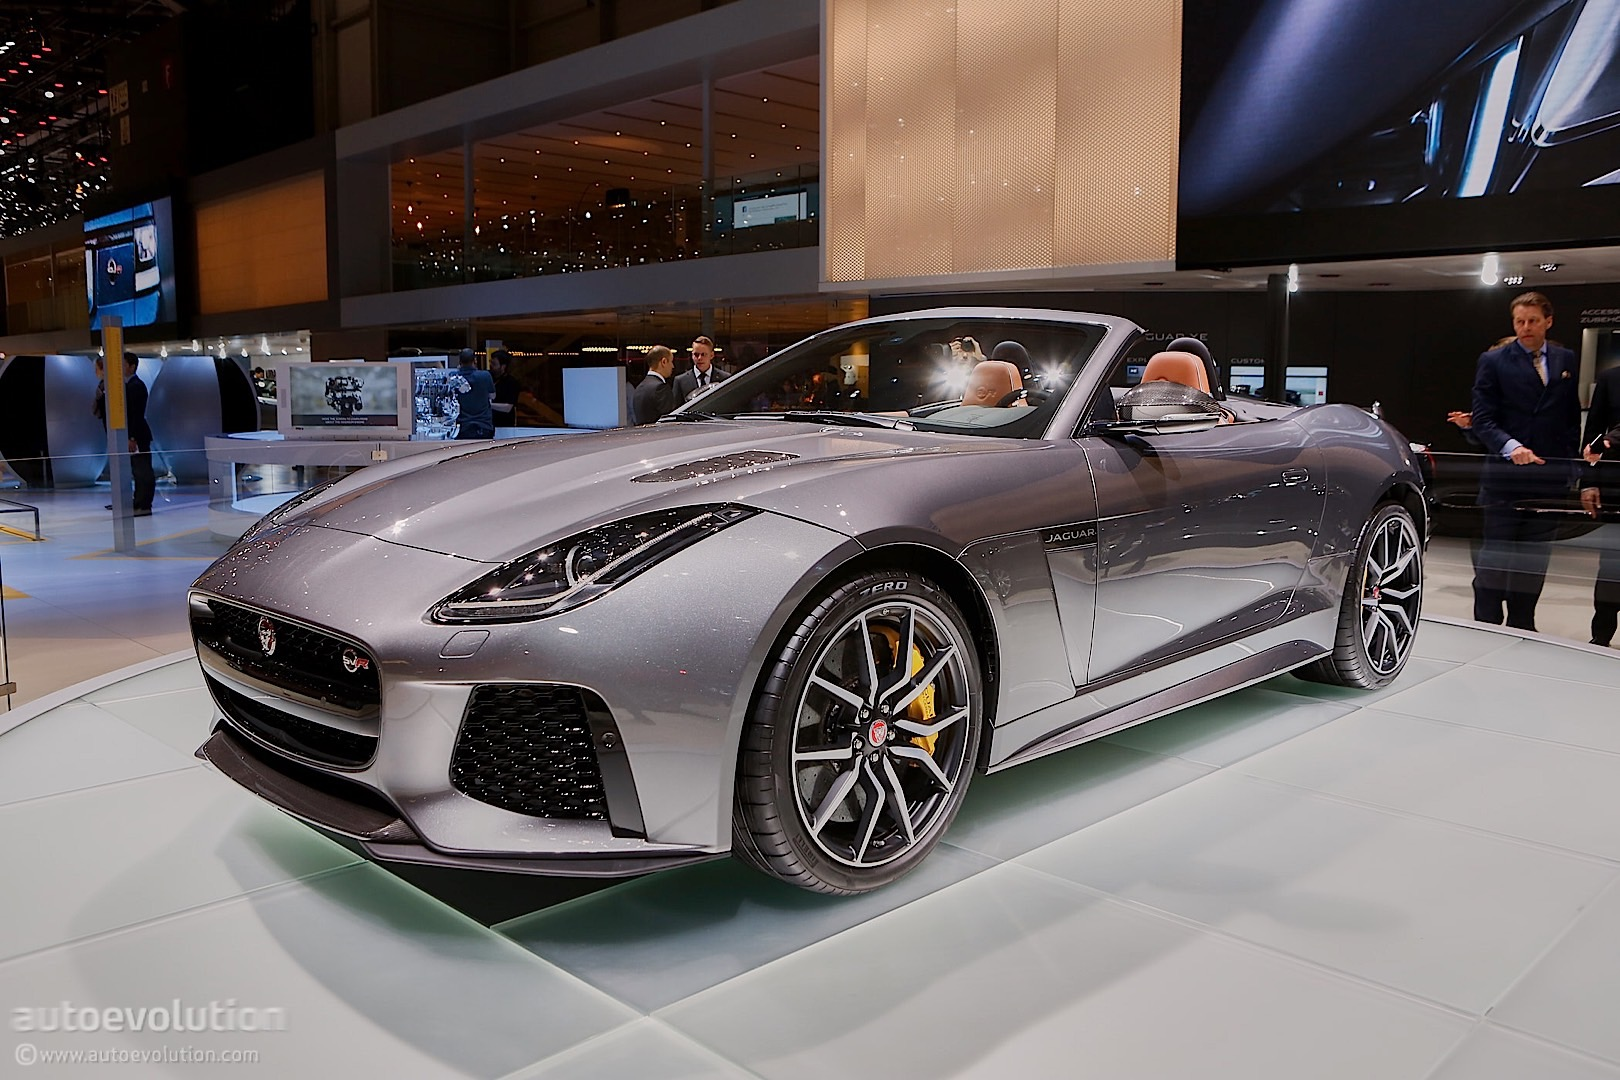 2017 Jaguar F-Type SVR Brings Its 200 Mph Top Speed to ...